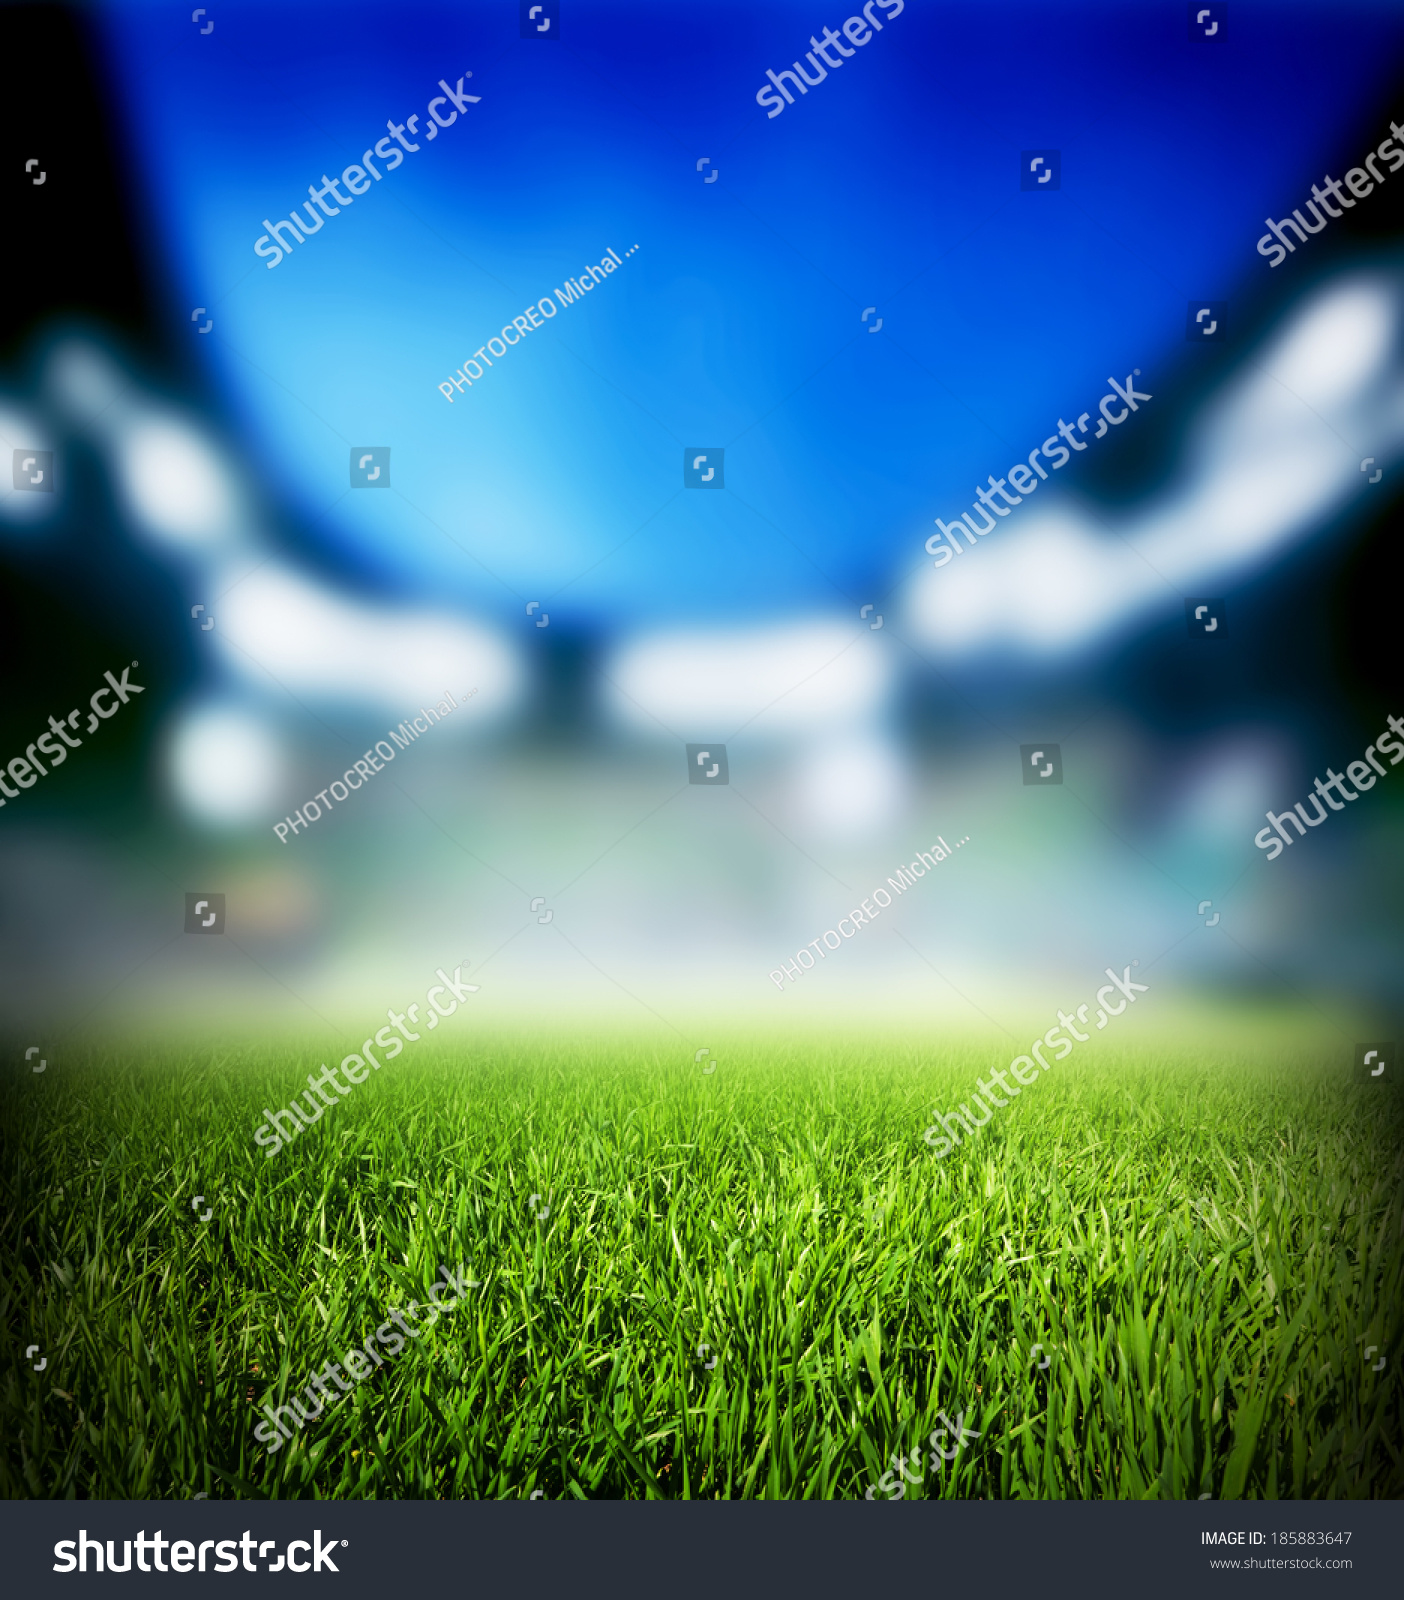 Football Stadium Night Lights: Football Soccer Match Grass Close Up Stock Photo 185883647